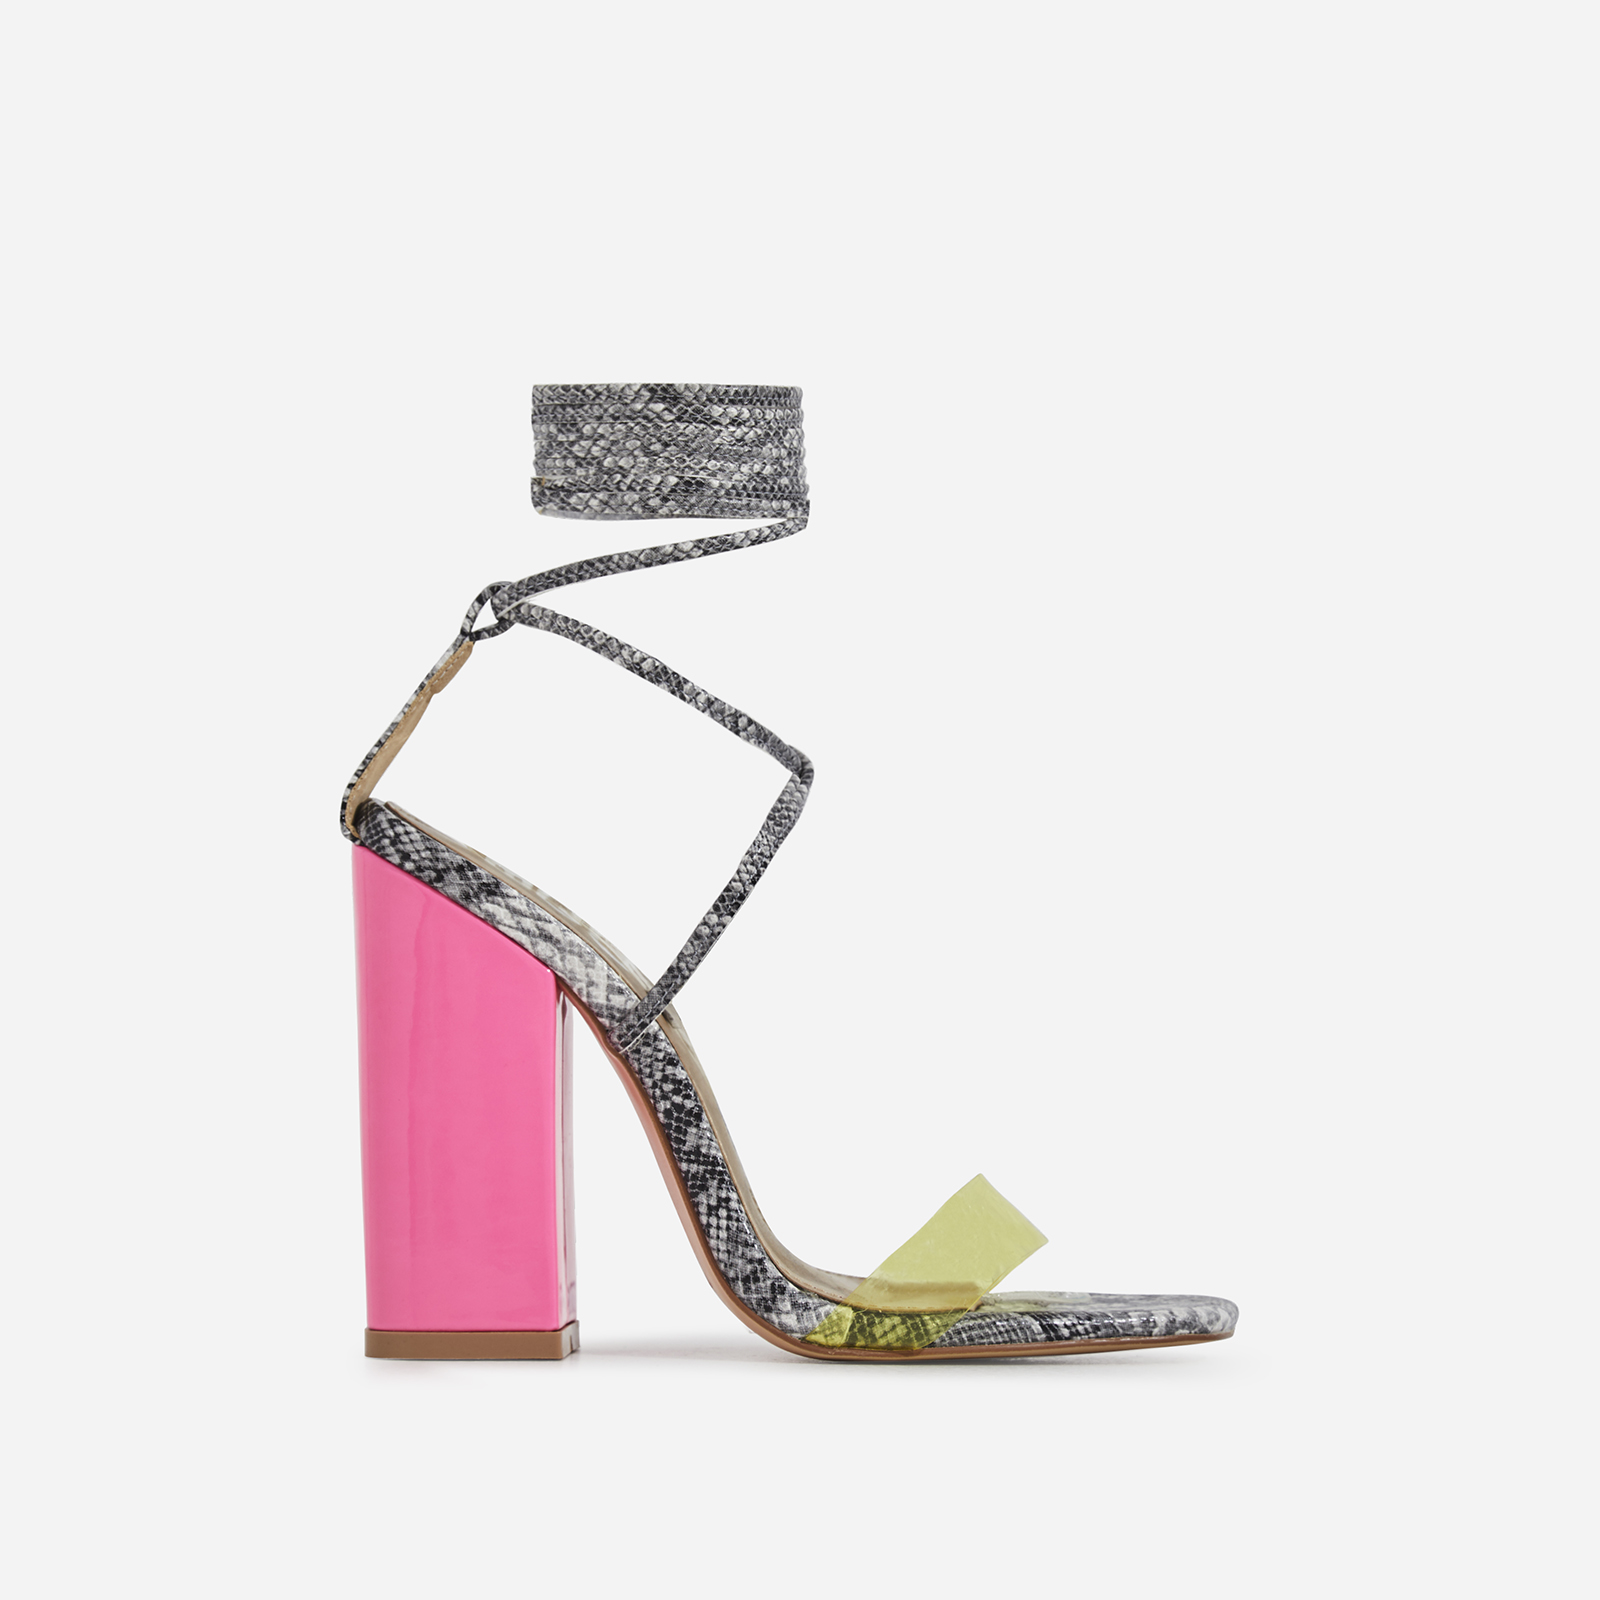 Elini Patent Block Heel Perspex Lace Up Heel In Grey Snake Print Faux Leather